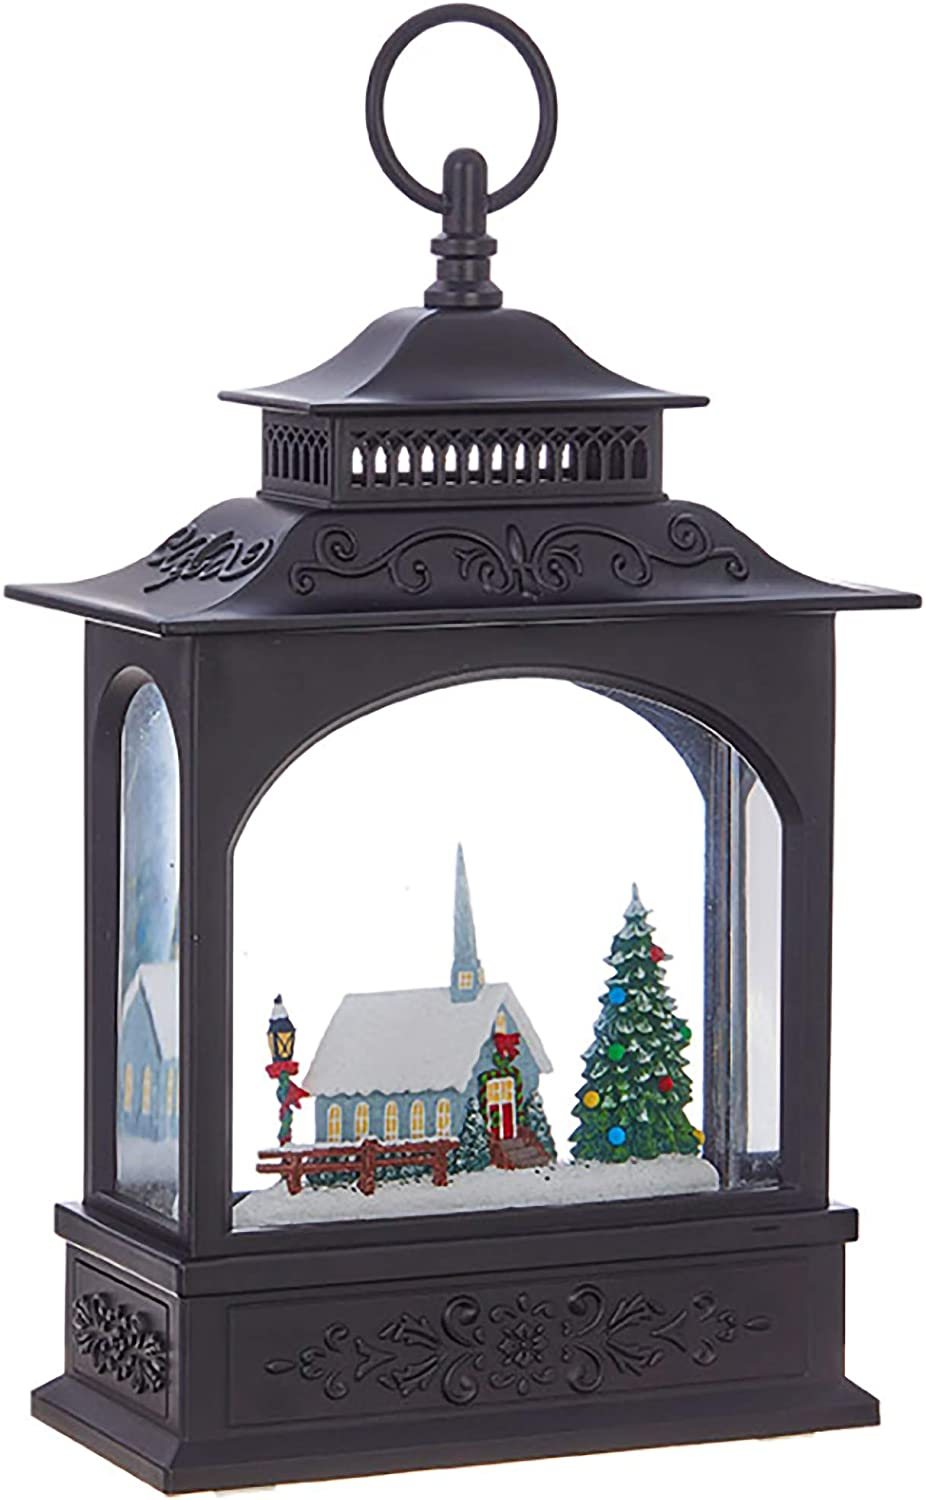 Raz Imports Lighted Church Spinning Christmas Water Snow Glitter Globe Lantern Decor, 11 Inch, Battery Operated Or USB with Timer